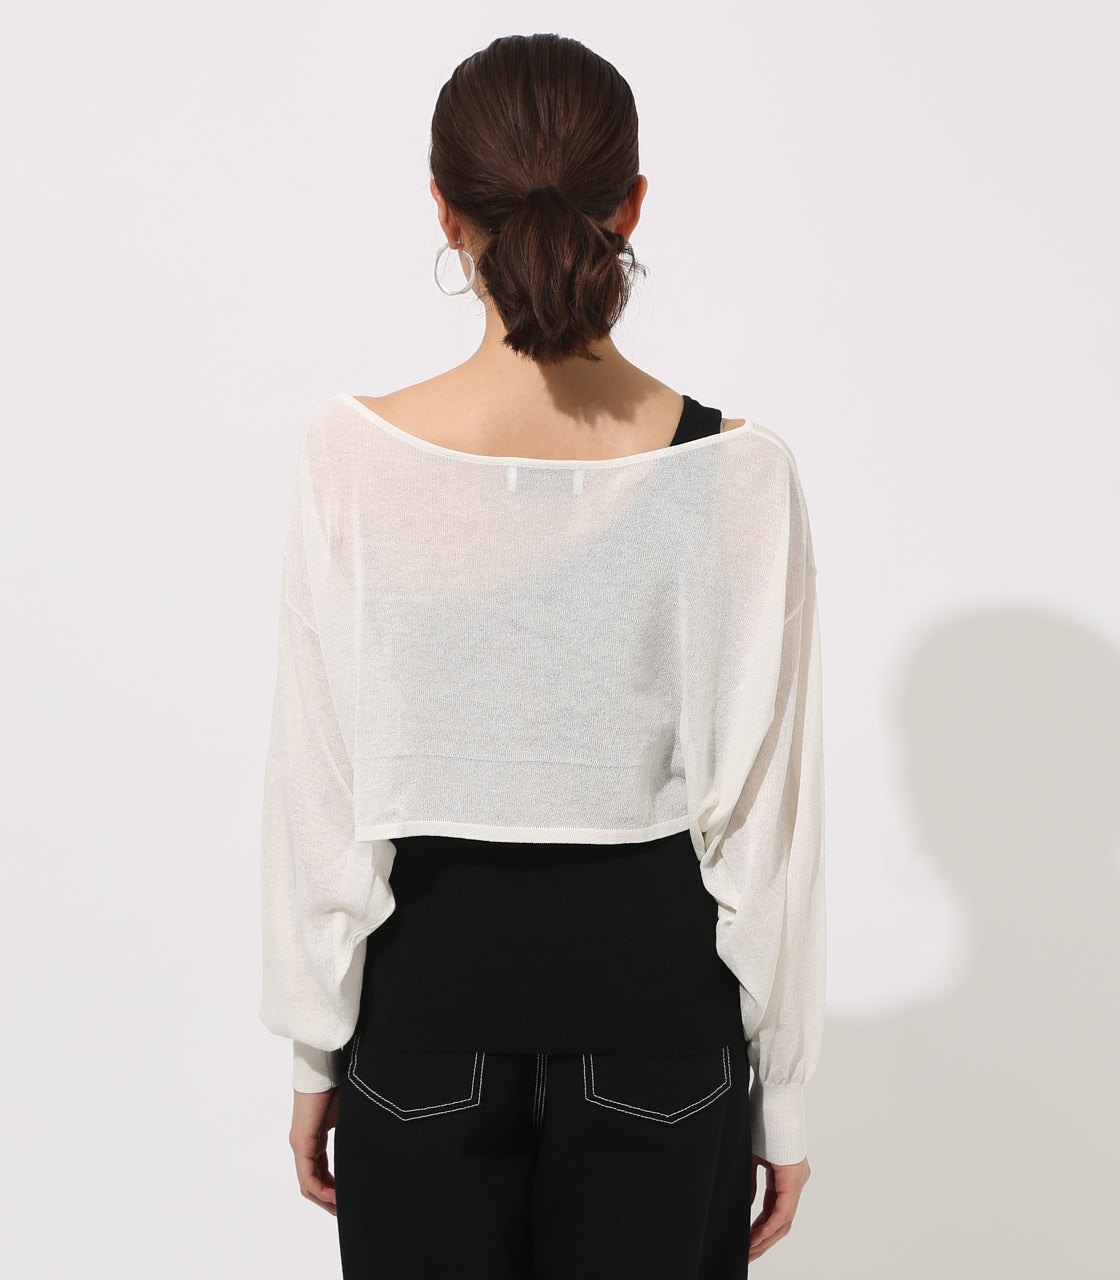 【AZUL BY MOUSSY】ONE-SHOULDER KNIT SET TOPS 詳細画像 O/WHT 7